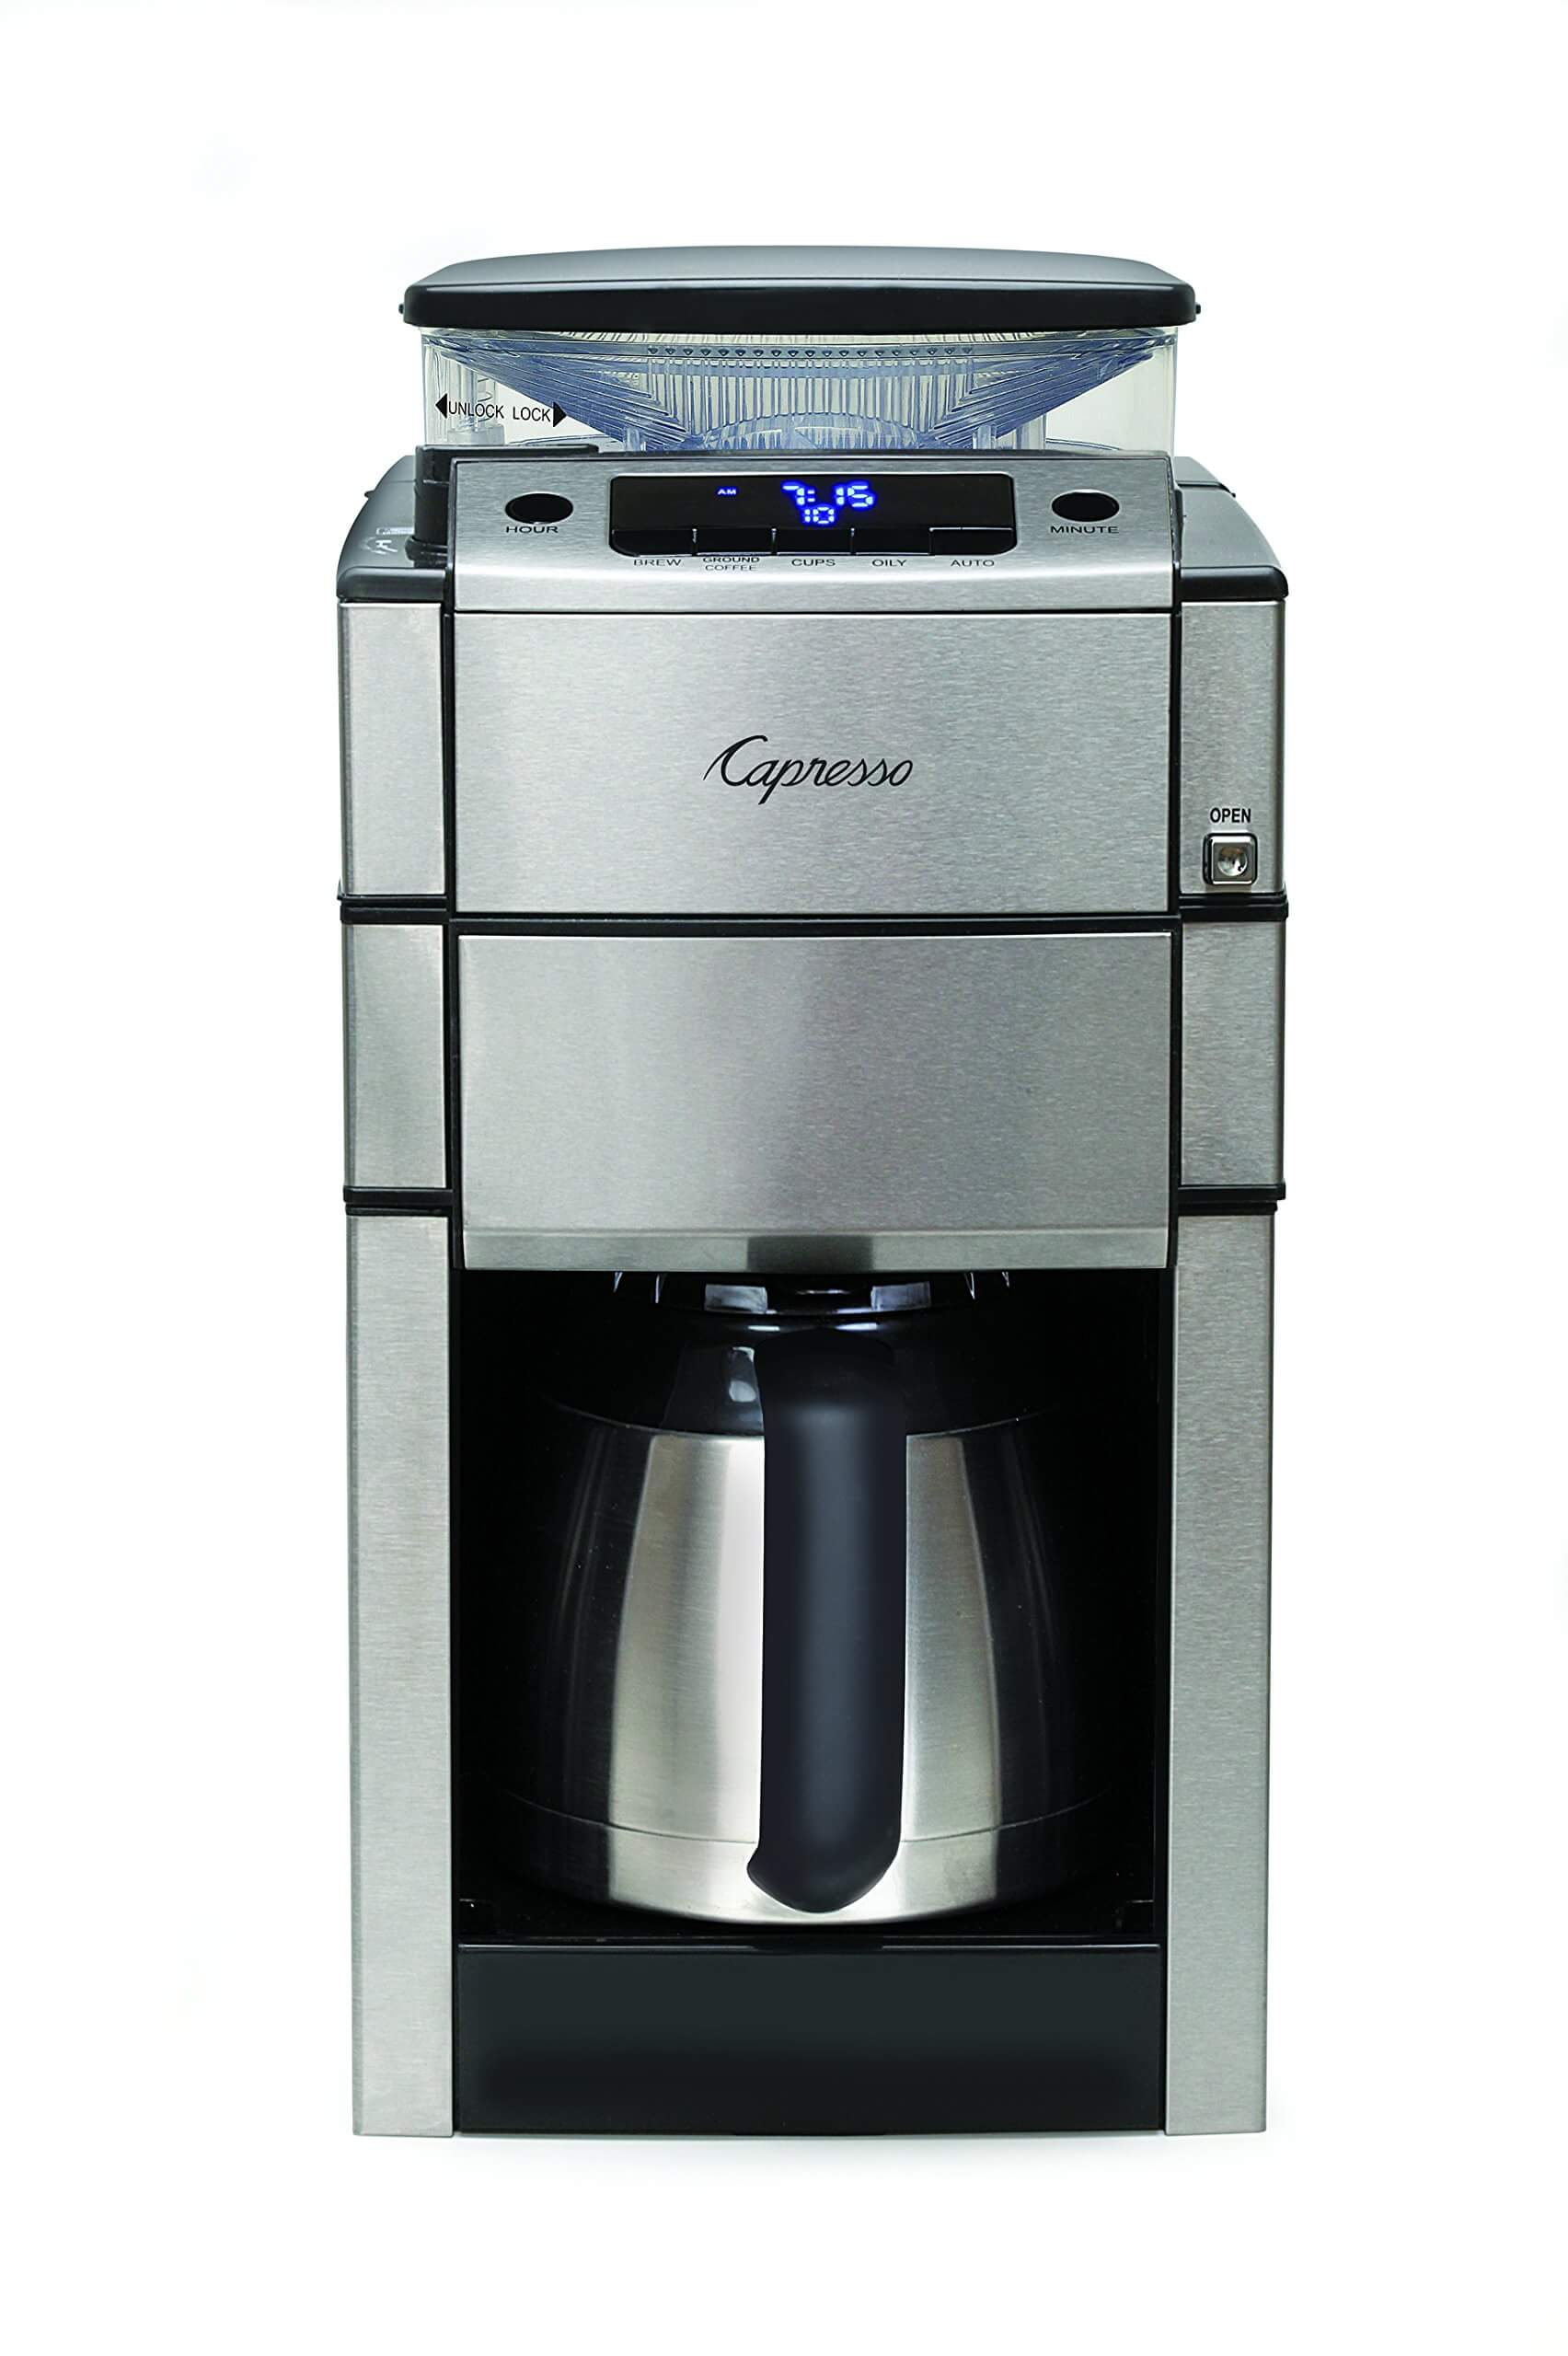 best coffee maker with grinder, Capresso 488.05 Team Pro Plus Coffee Maker with Grinder, best coffee maker and grinder, best coffee pot, best tasting coffee maker